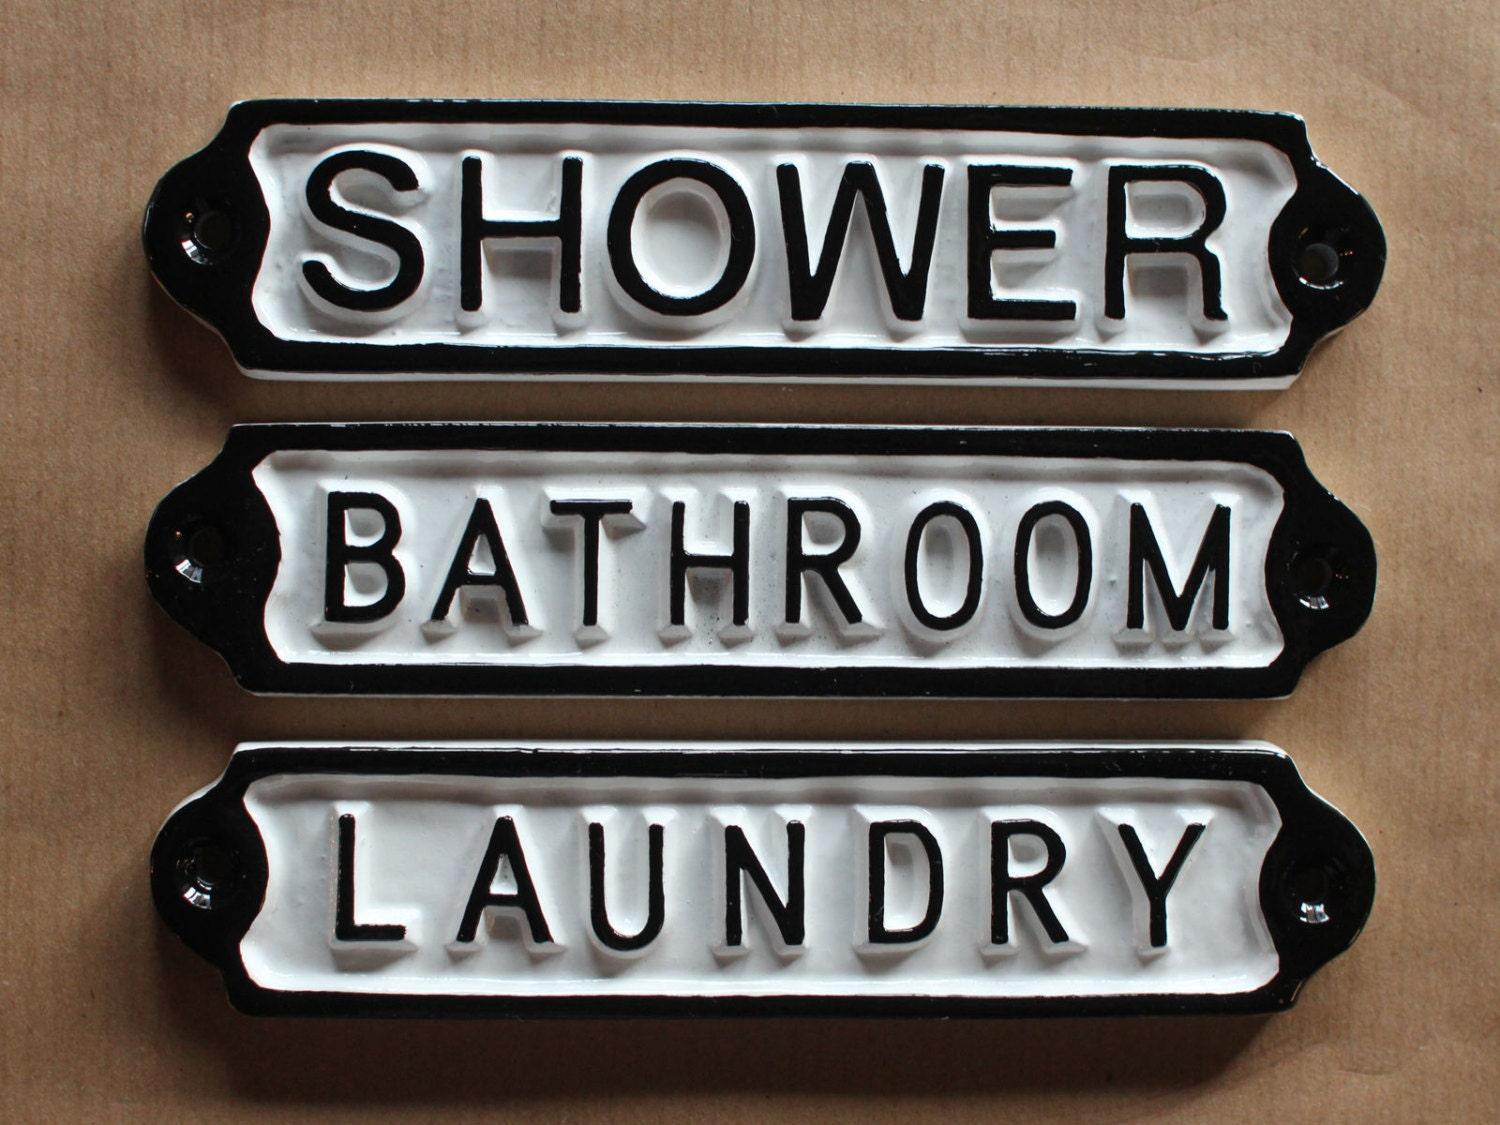 Antique Bathroom Shower Laundry Door Signs Shabby Chic